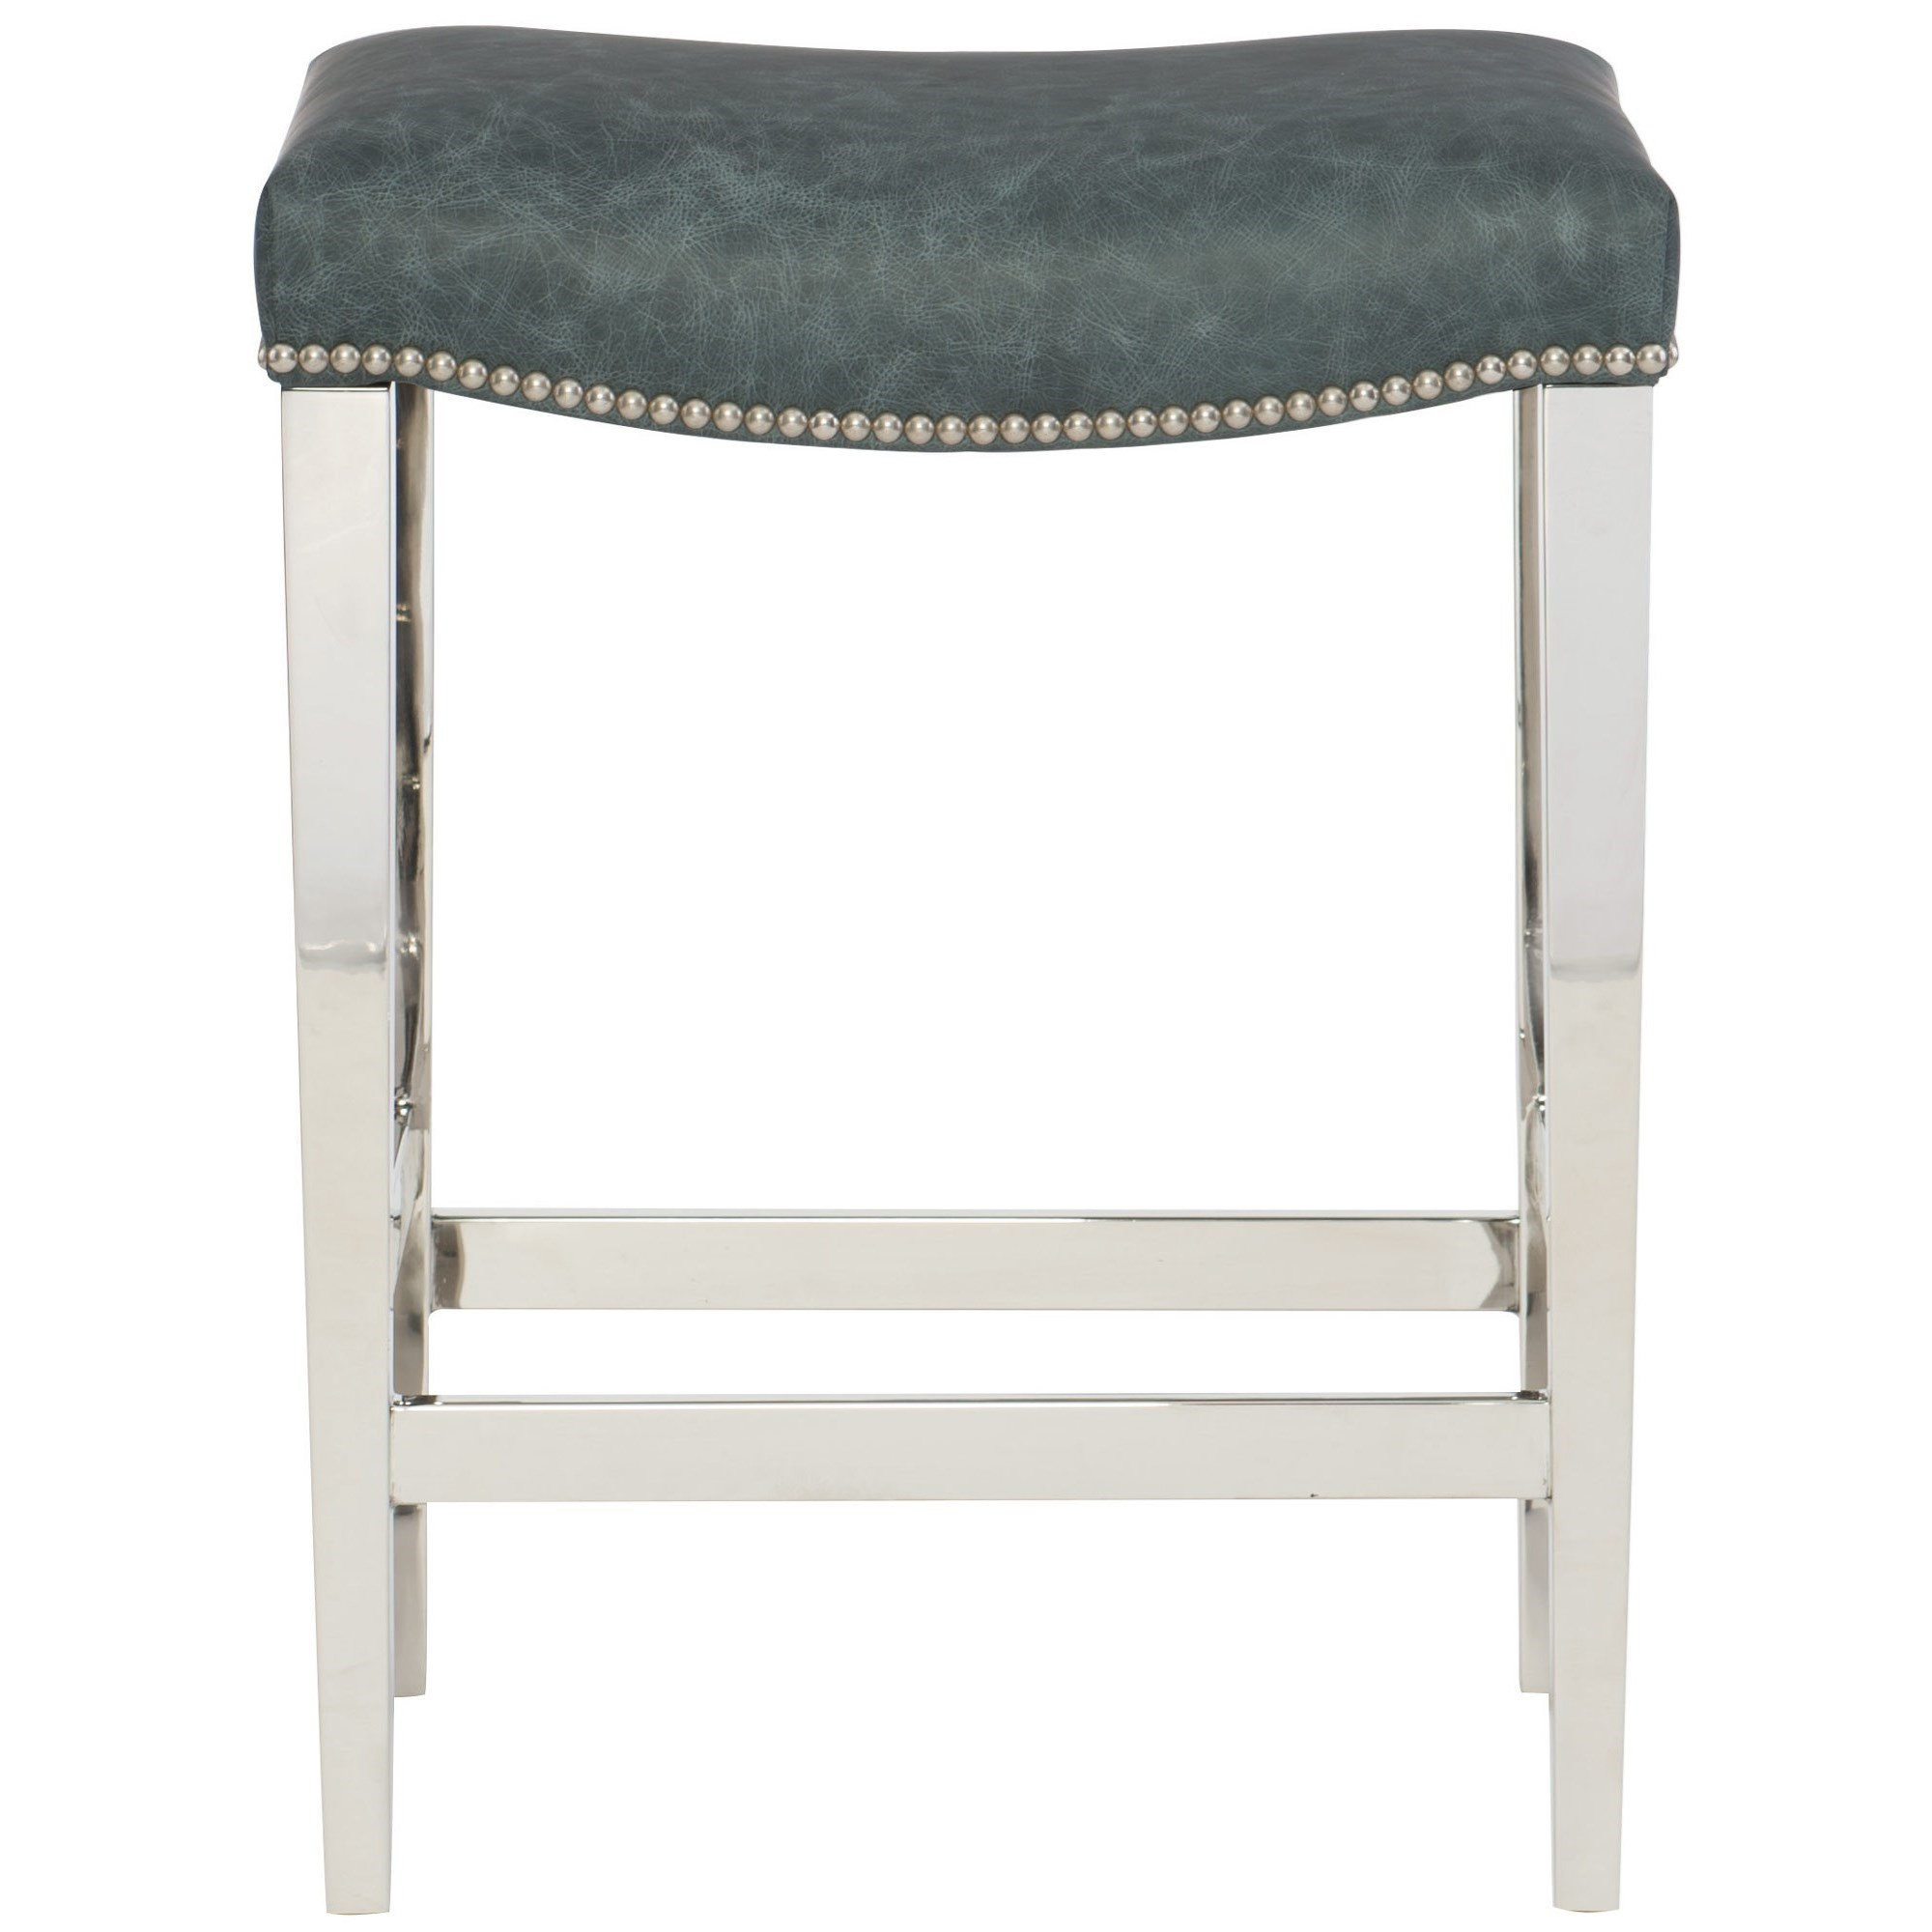 Marvelous Bernhardt Interiors Thorpe 366 581L Leather Counter Height Pdpeps Interior Chair Design Pdpepsorg